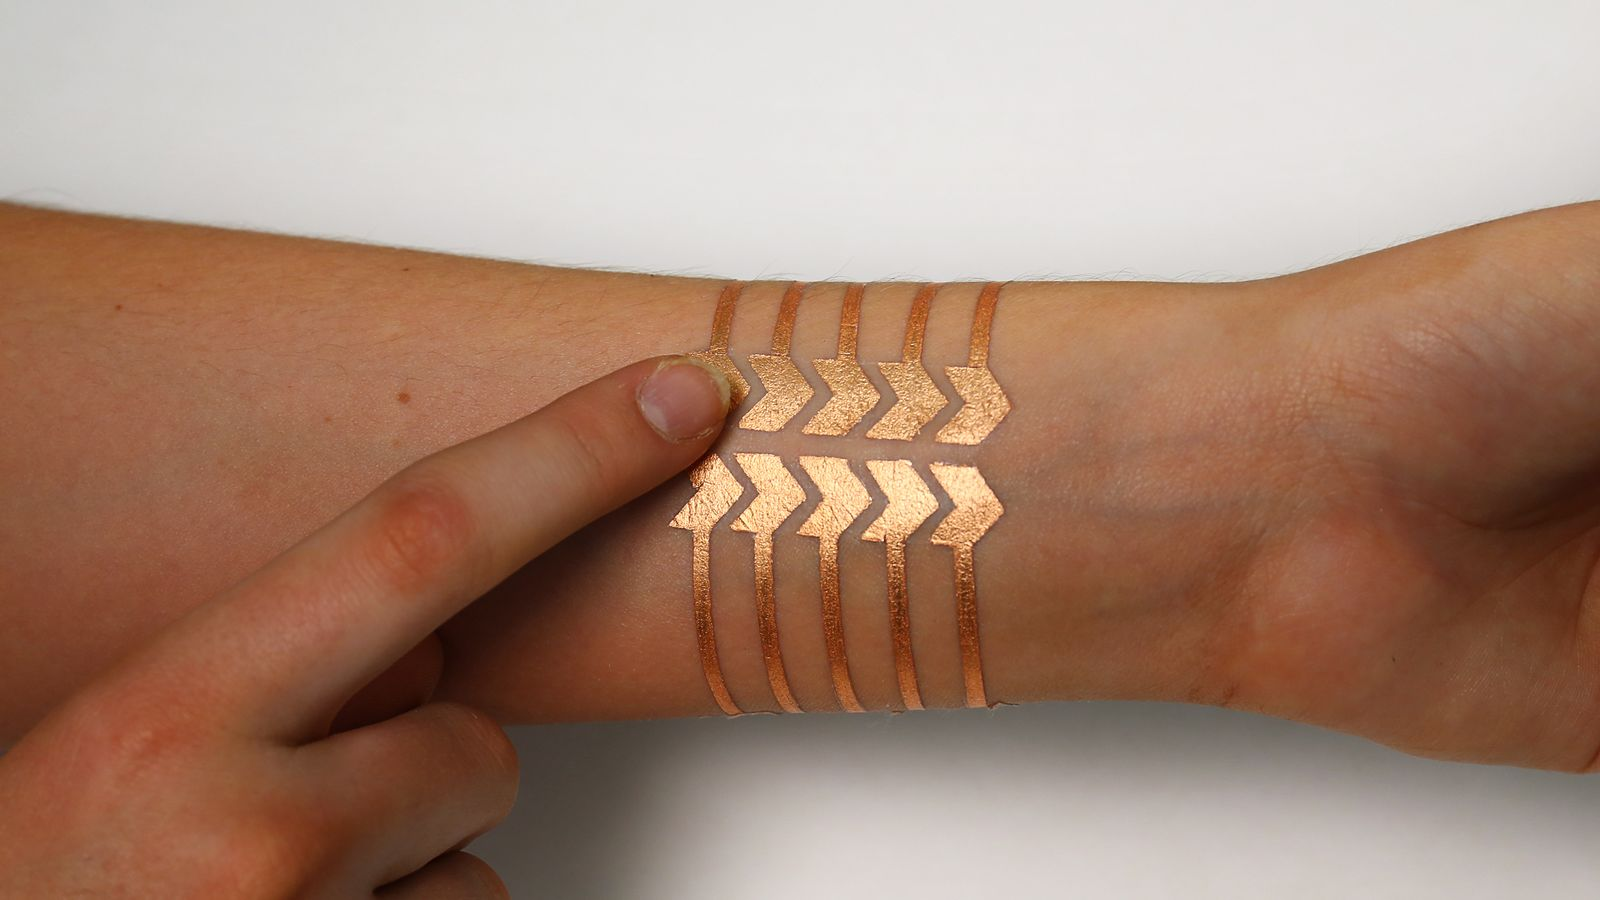 A 'smart' tattoo' to control your smartphone?